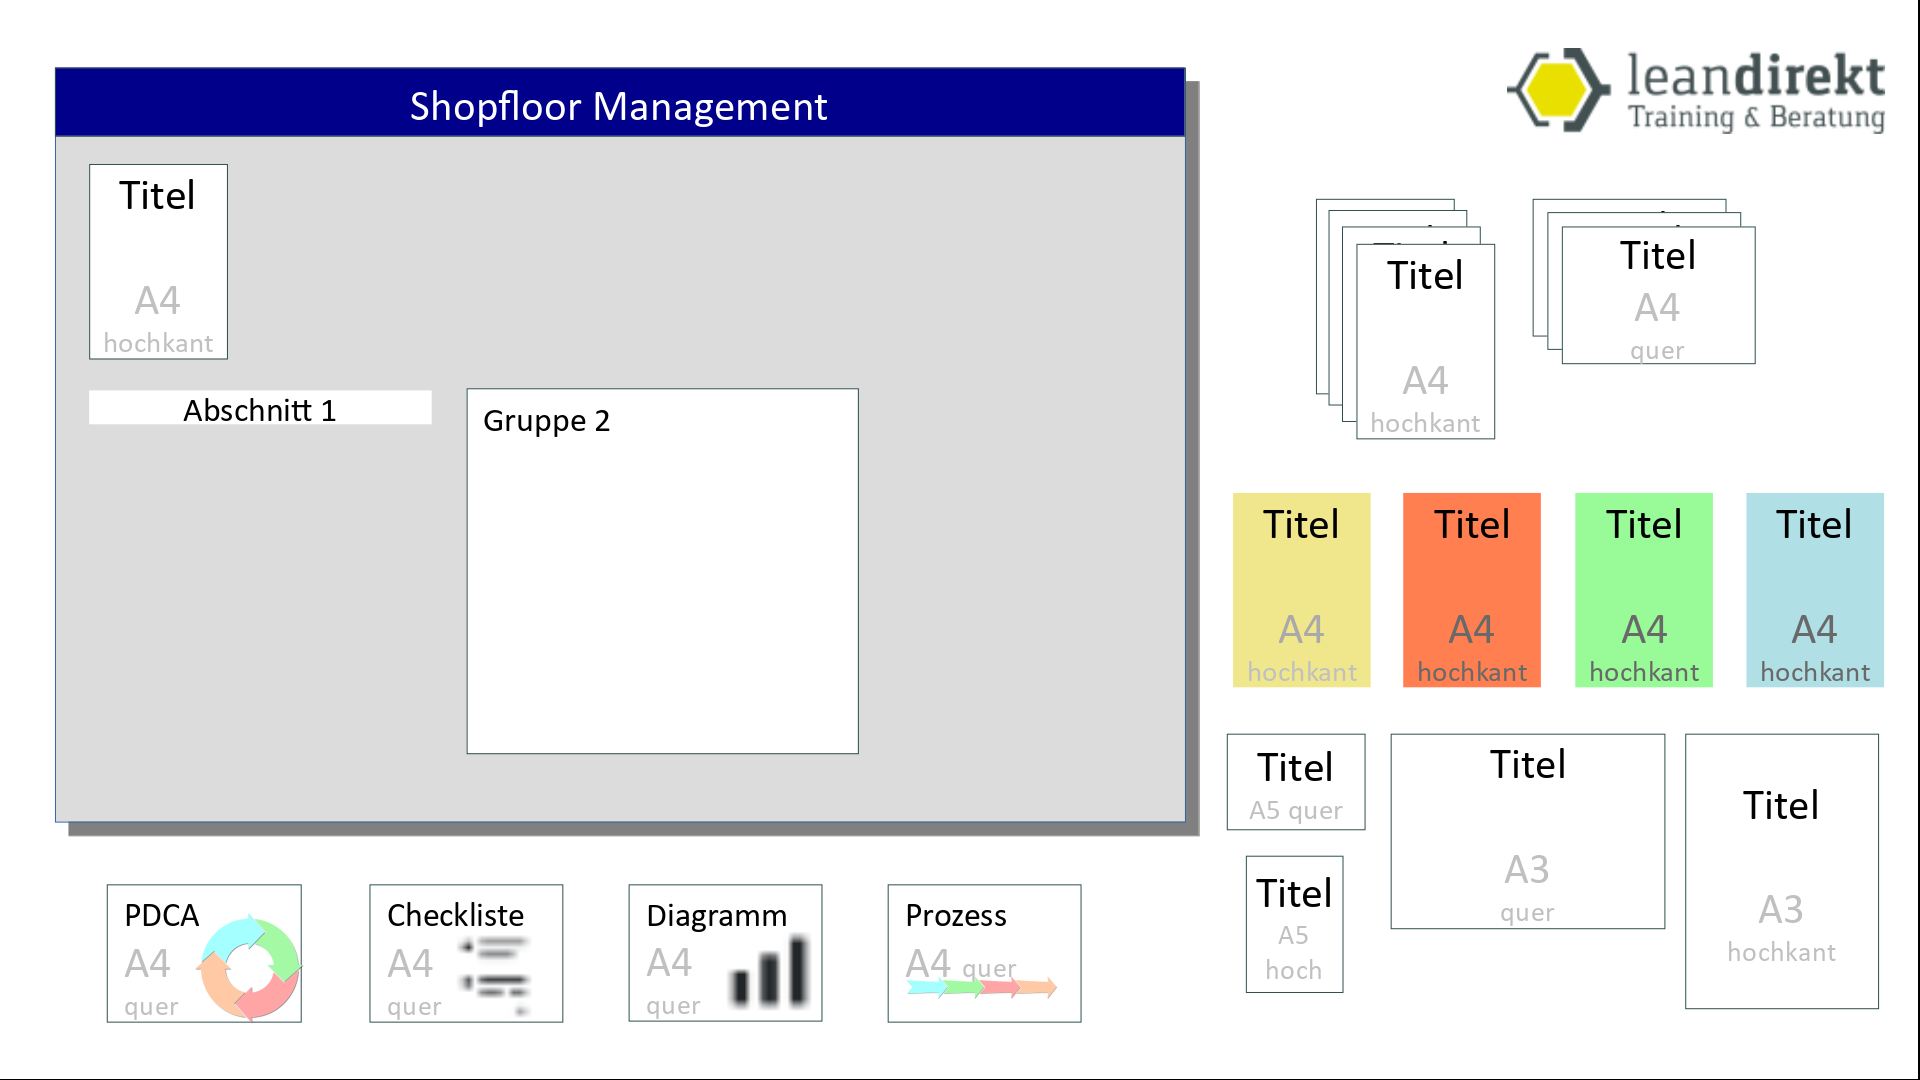 Shopfloor Management Board Designer